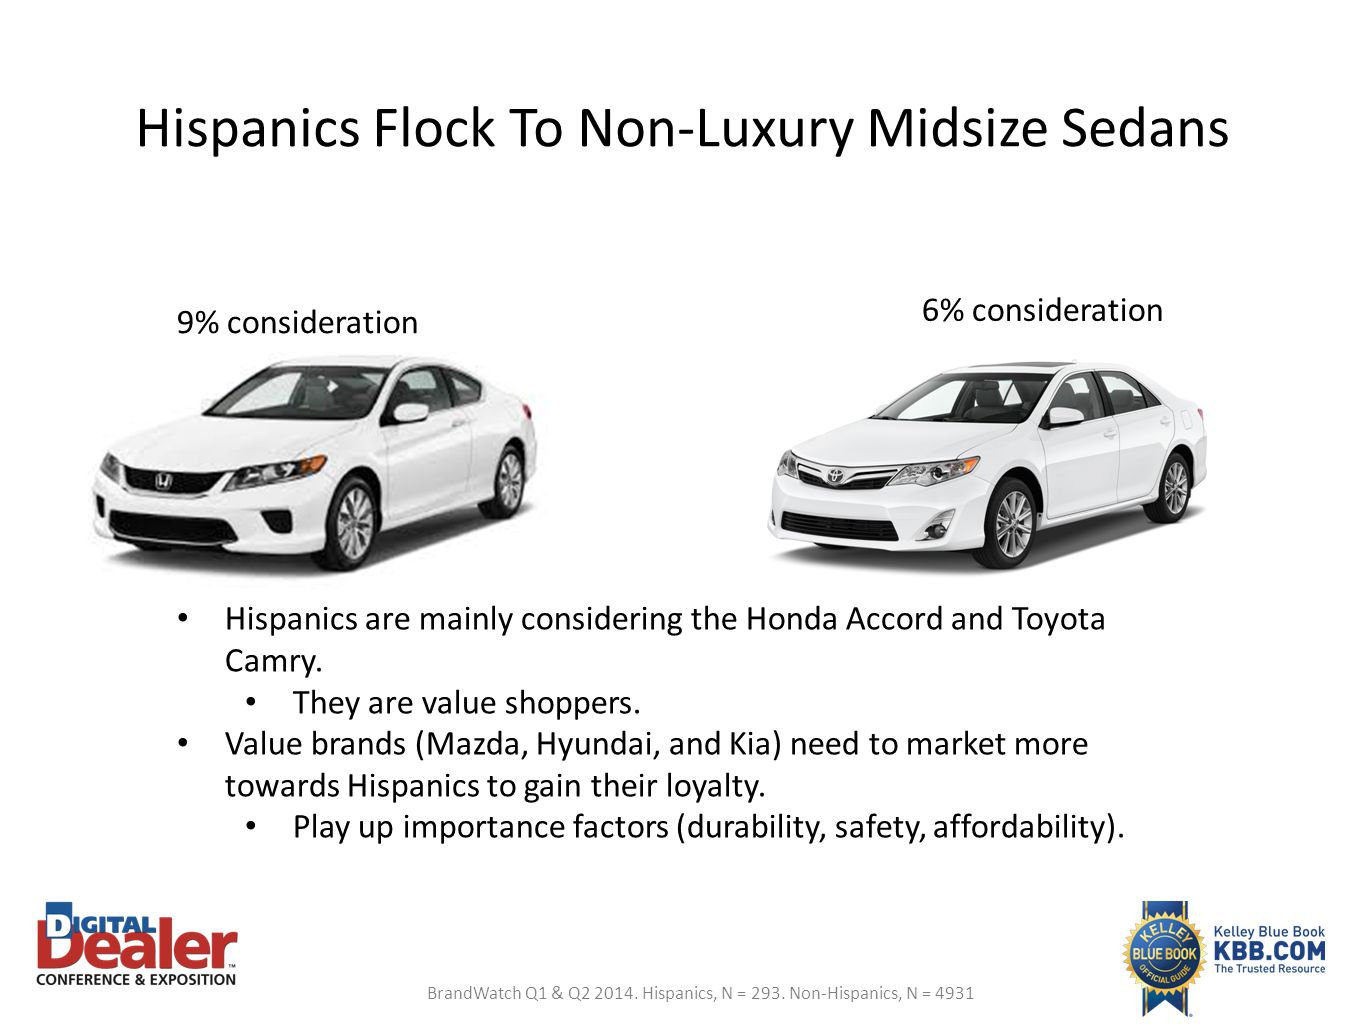 Hispanics Flock To Non-Luxury Midsize Sedans